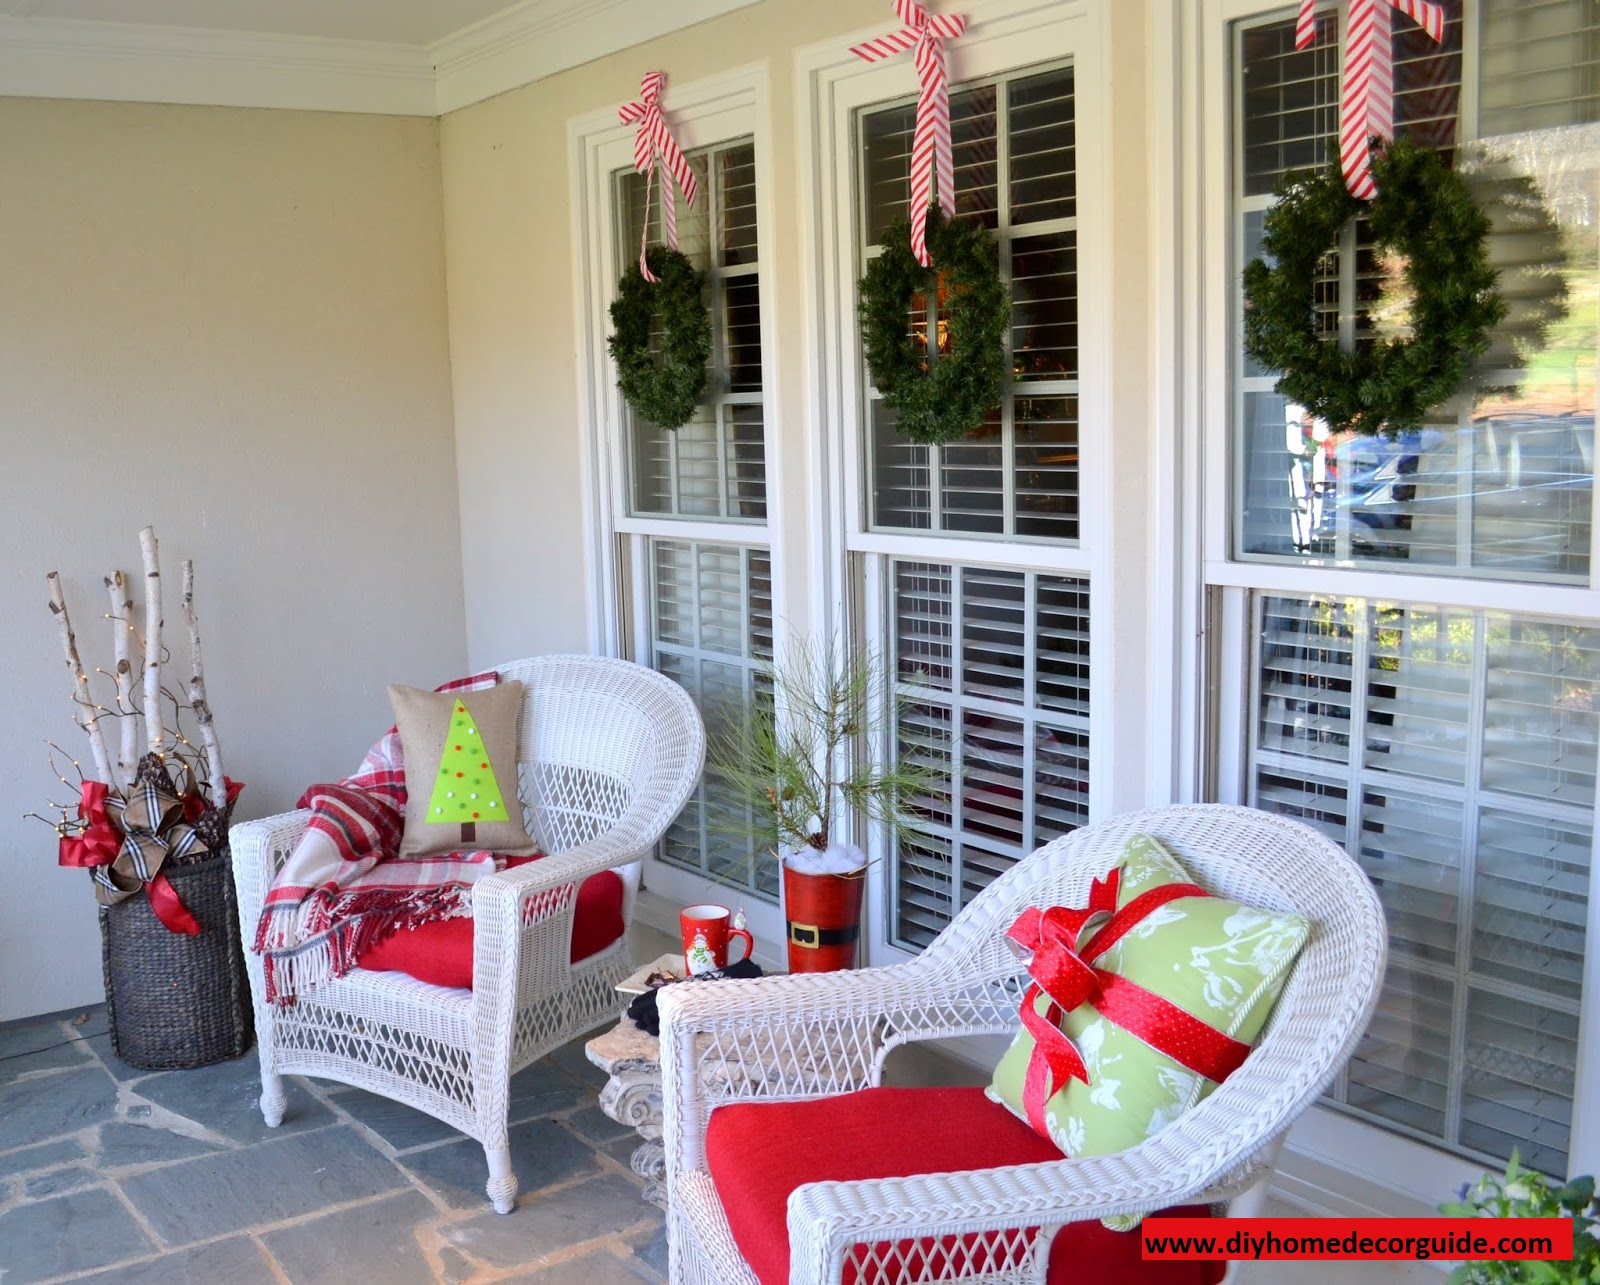 Superbe Outdoor Christmas Decor Ideas · Simple Outdoor Christmas Decorations